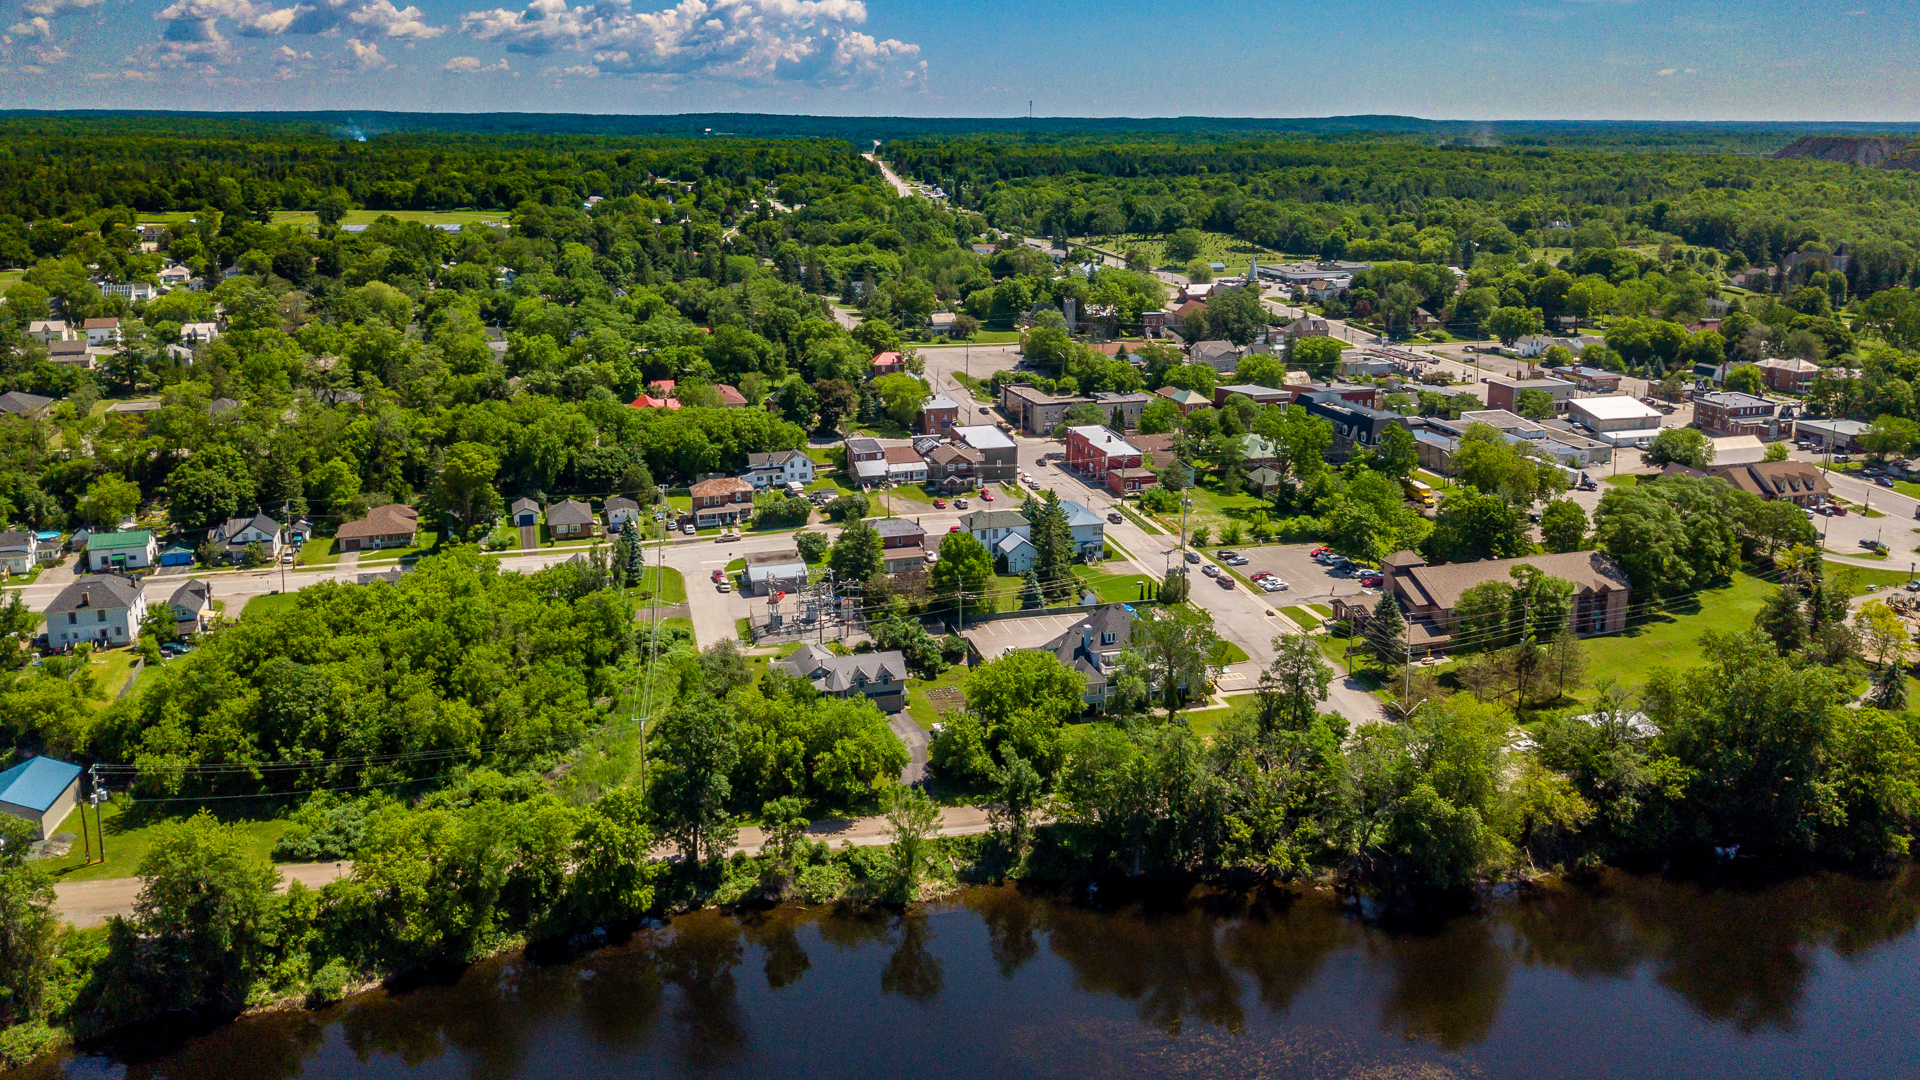 Marmora, east of the river. Pump house LOWER LEFT, Dr Parkin Living centre lower right. 2019 PHOTO BY SEAN.SCALLY